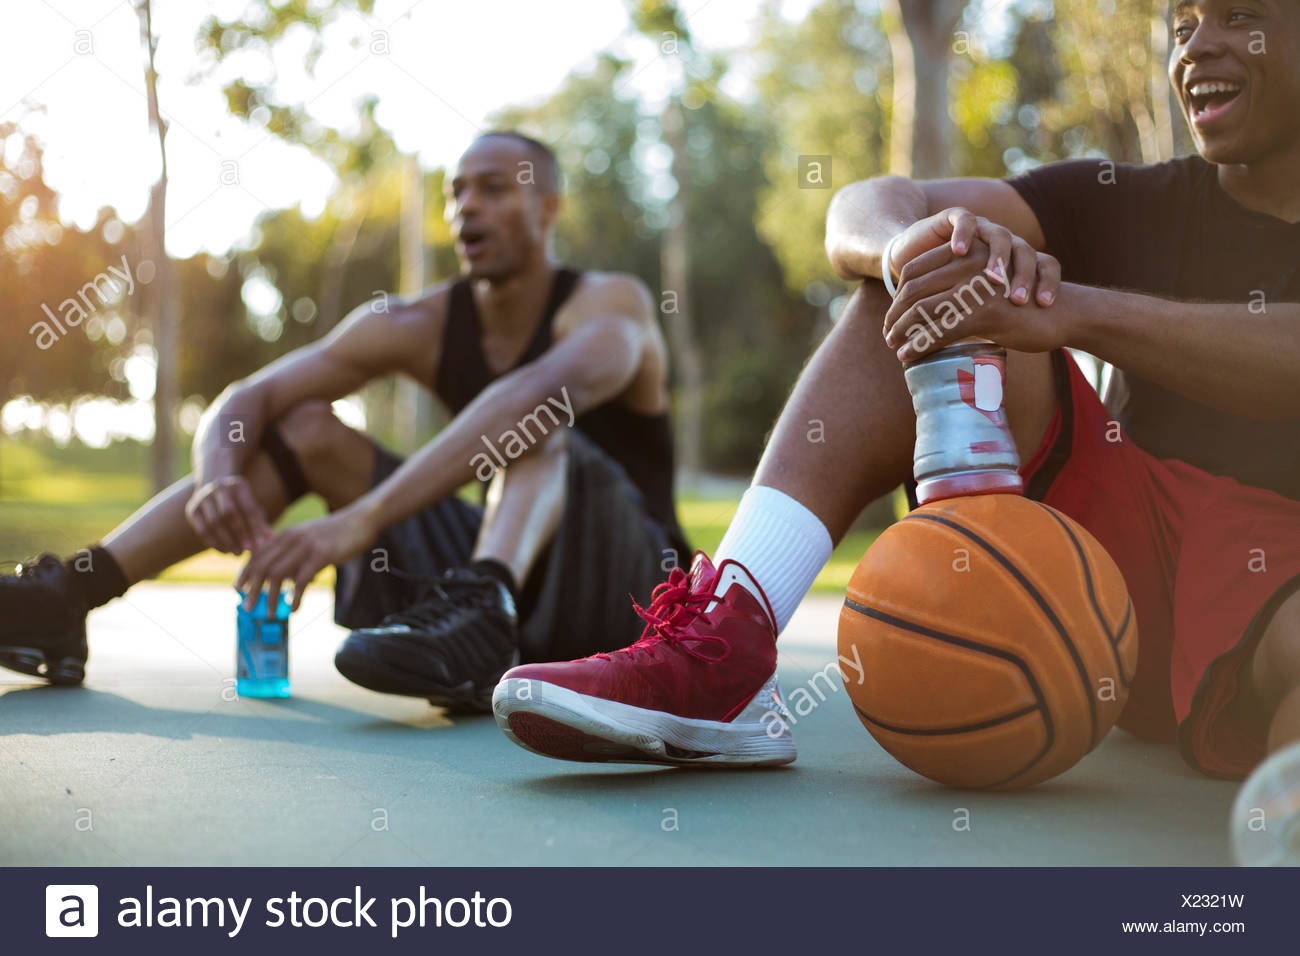 Two young men taking a water break while playing basketball in the park at sunset - Stock Image